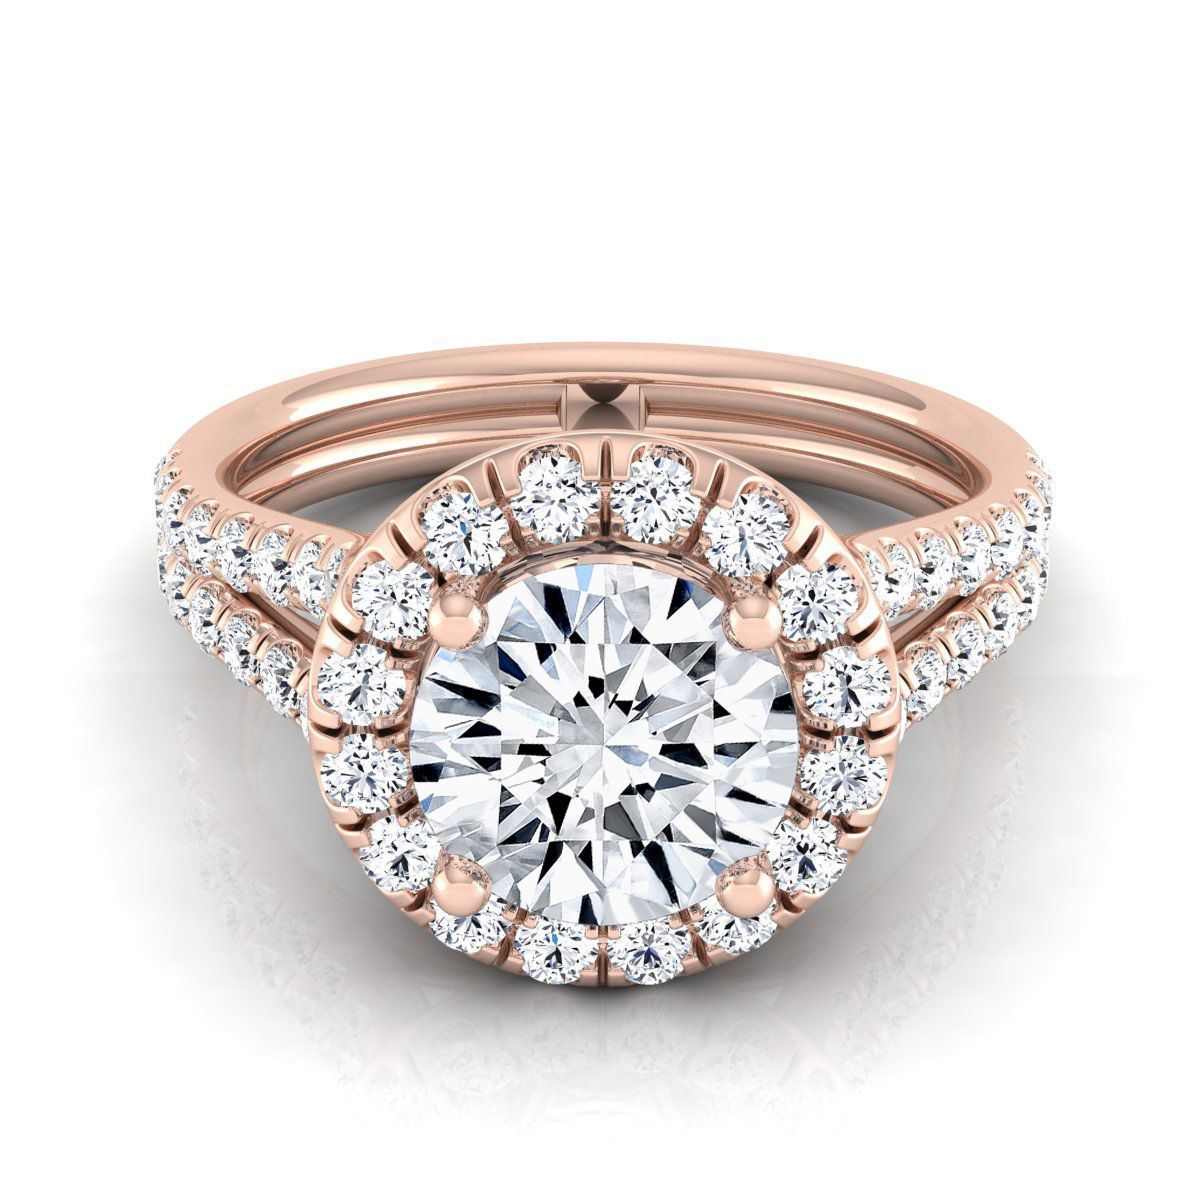 14k Rose Gold IGI-certified 1 2/3ct TDW Round Diamond Halo Engagement Ring With A Split Shank (H-I,VS1-VS2) (Size - 12), Women's